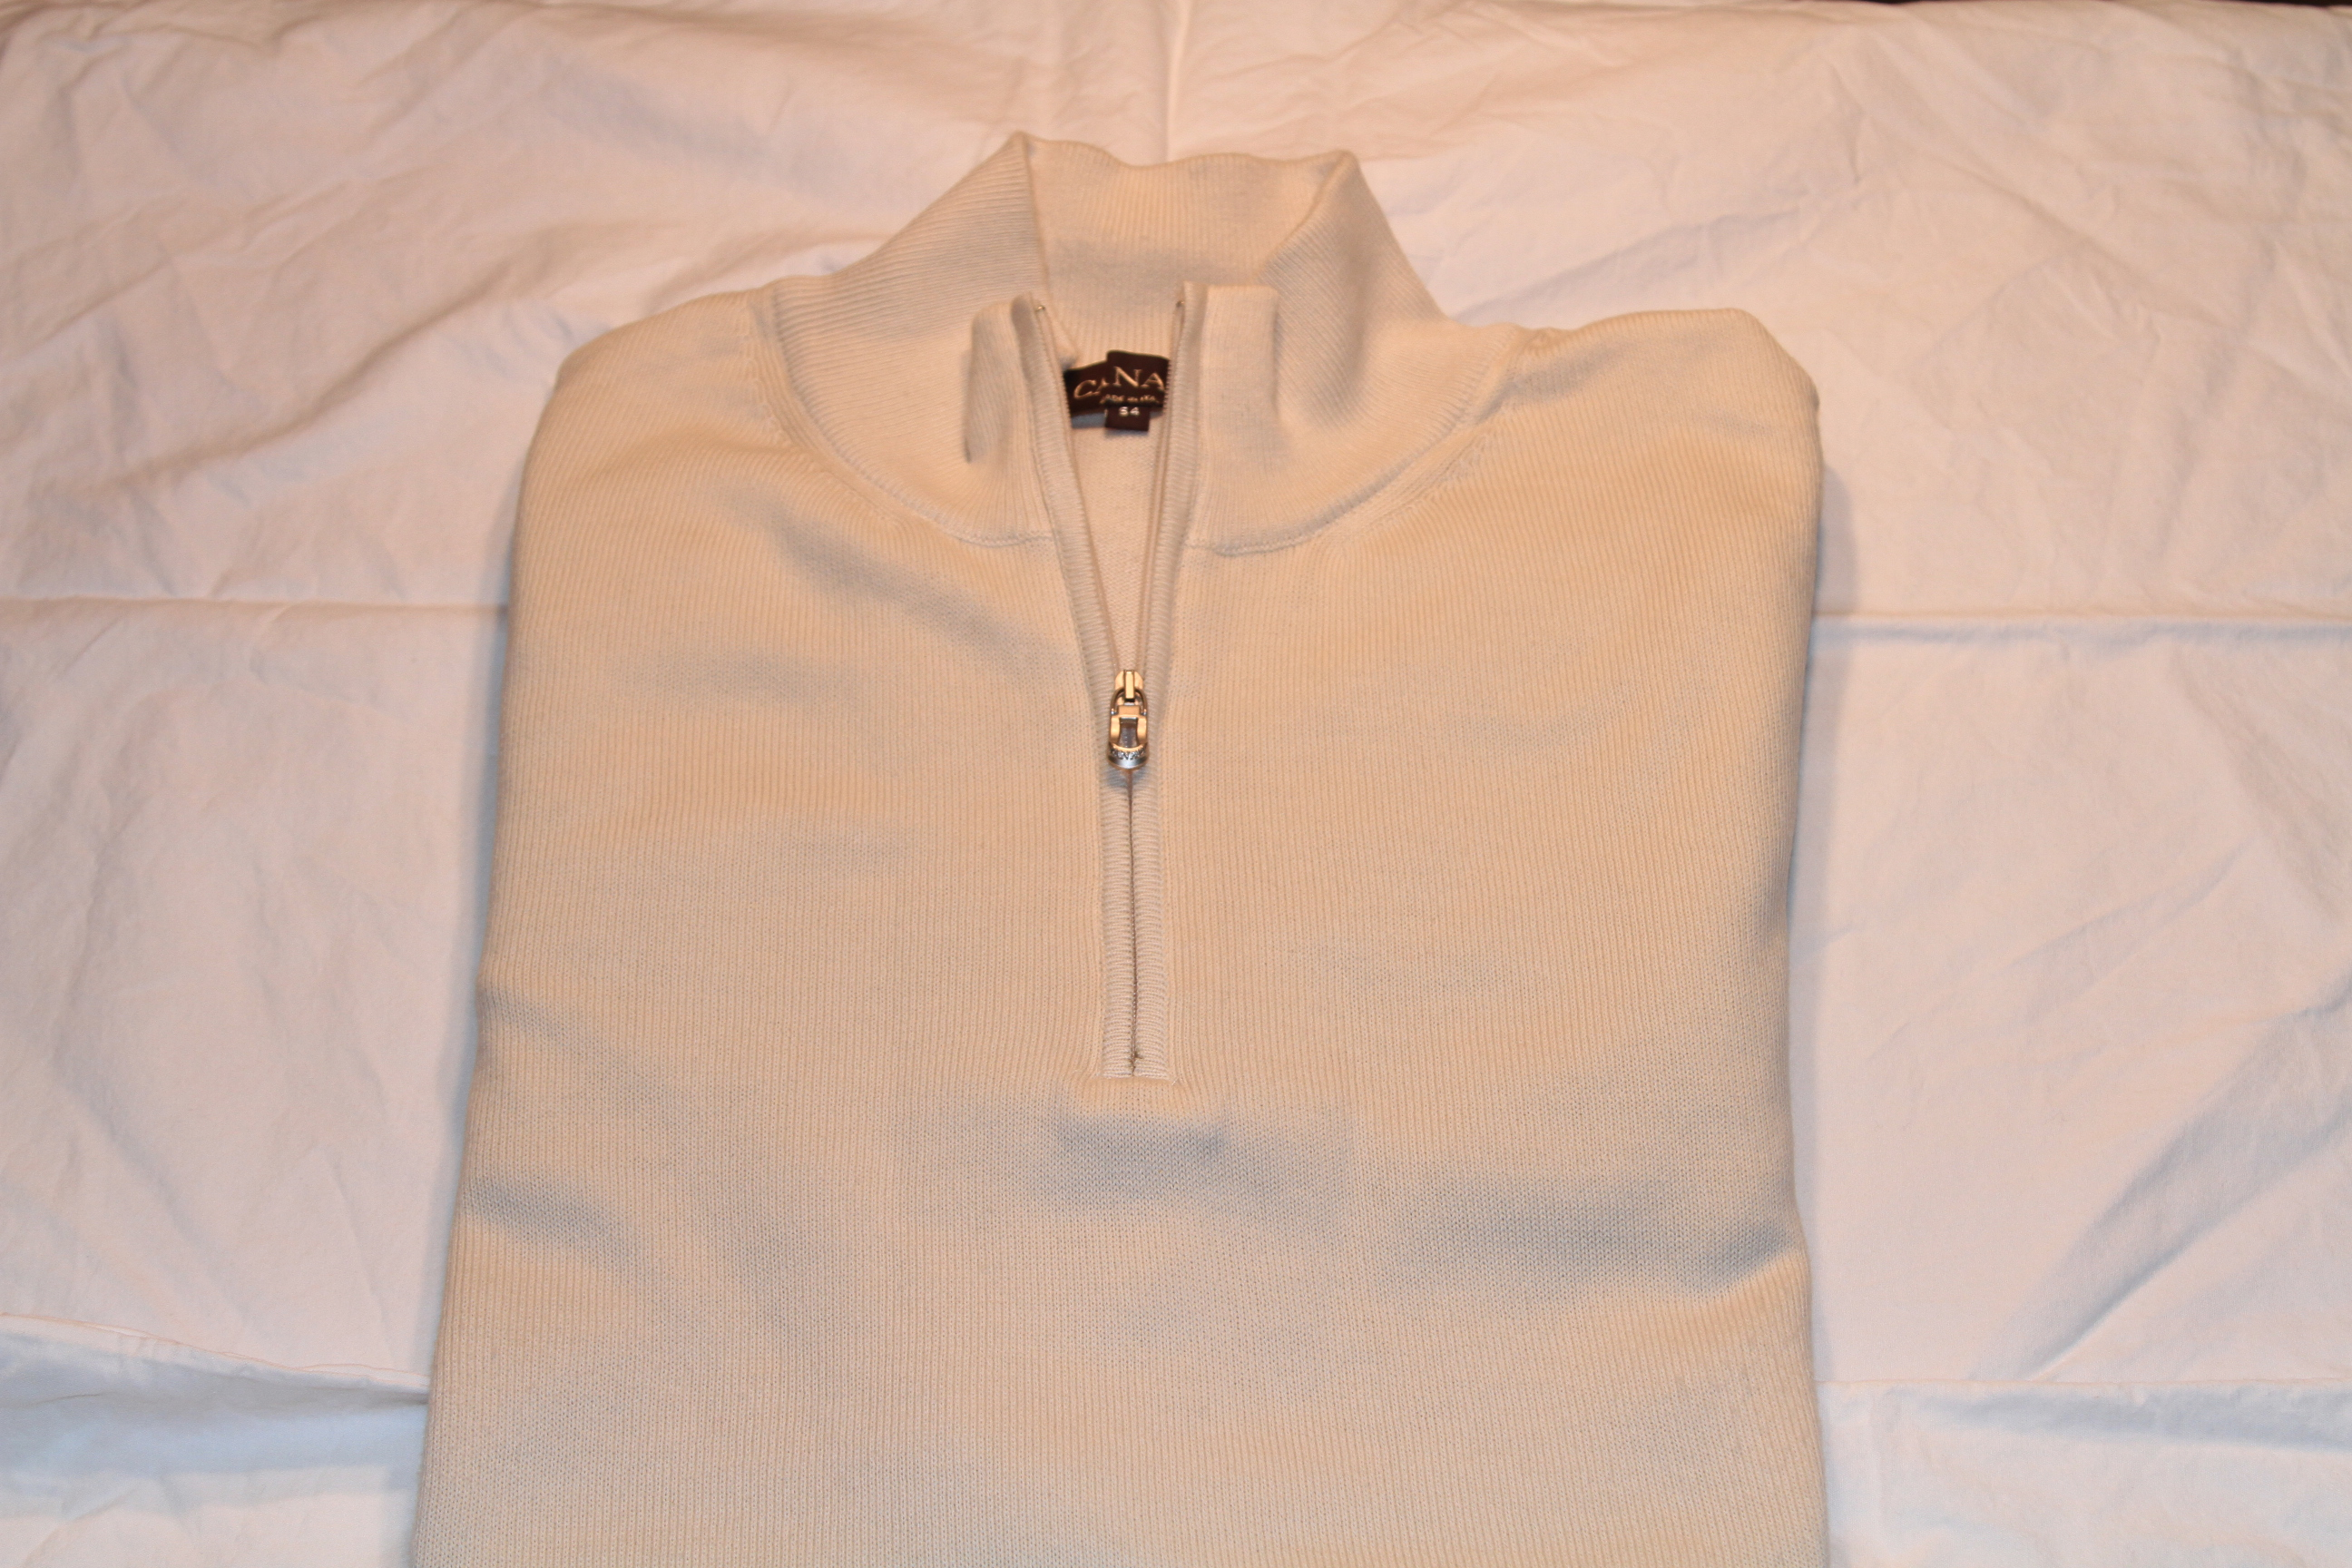 #2 - Canali Sweater Size 54 Off-White Half-Zip 100% Cotton $95